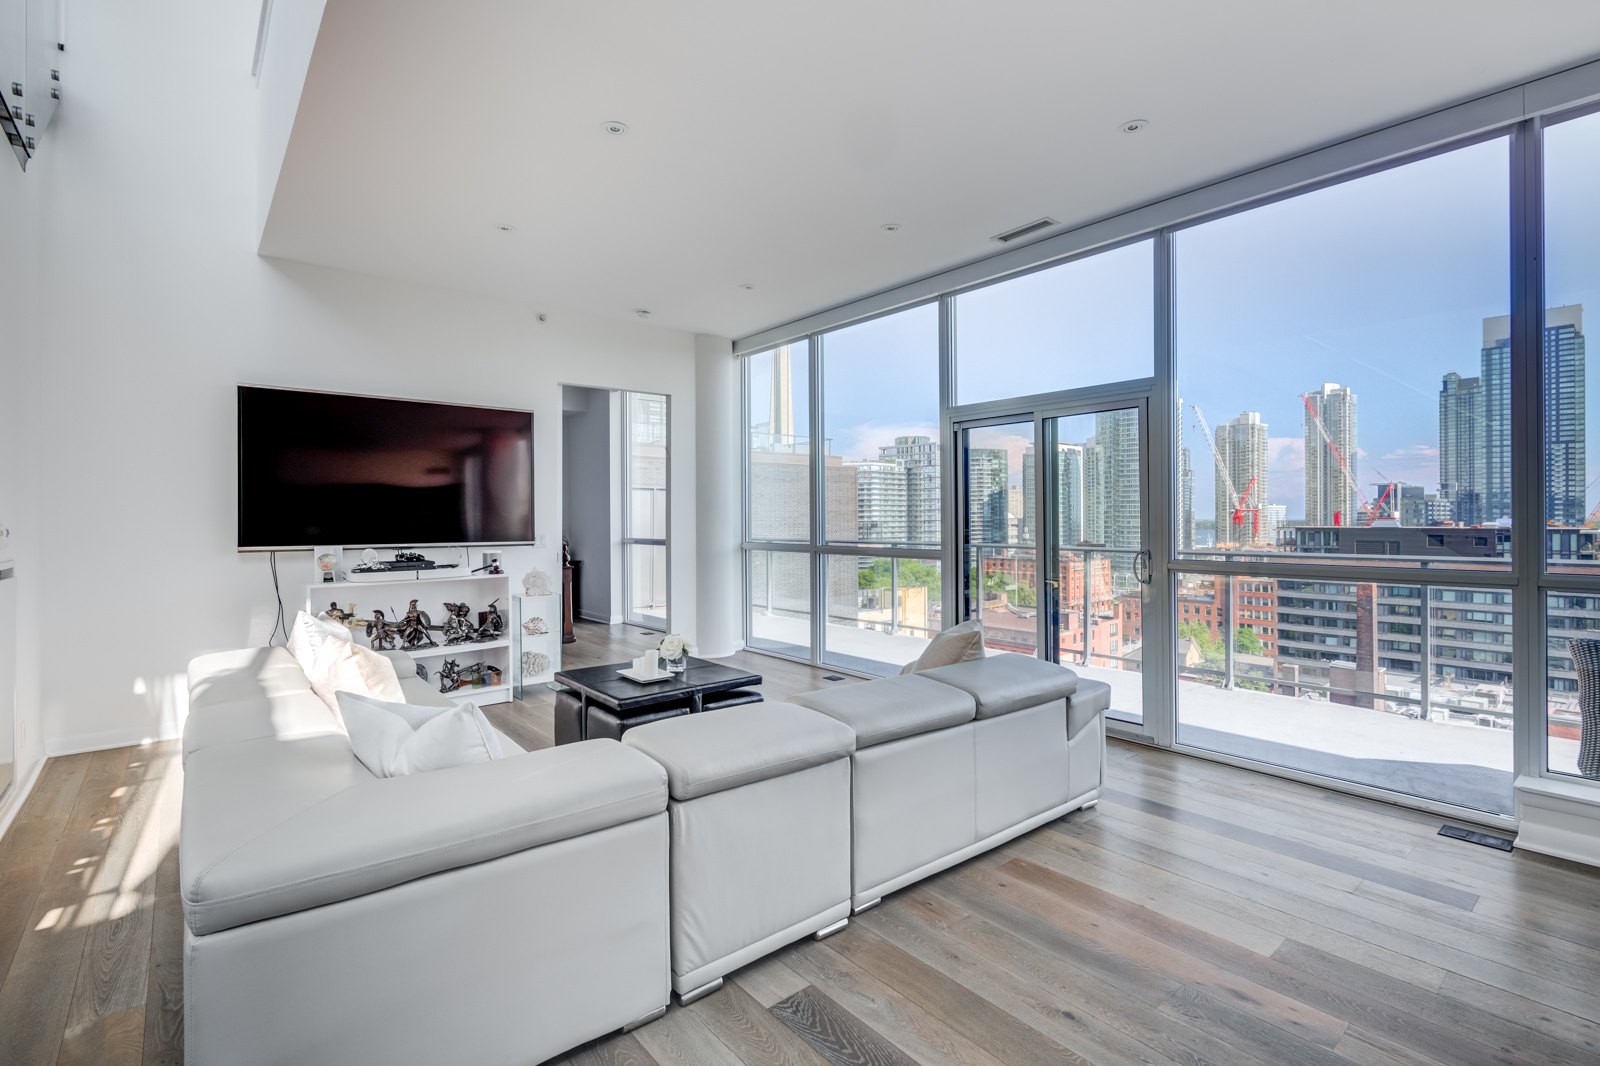 Open concept living room with furniture and windows - Victory Lofts Penthouse Suite in 478 King St W Toronto.